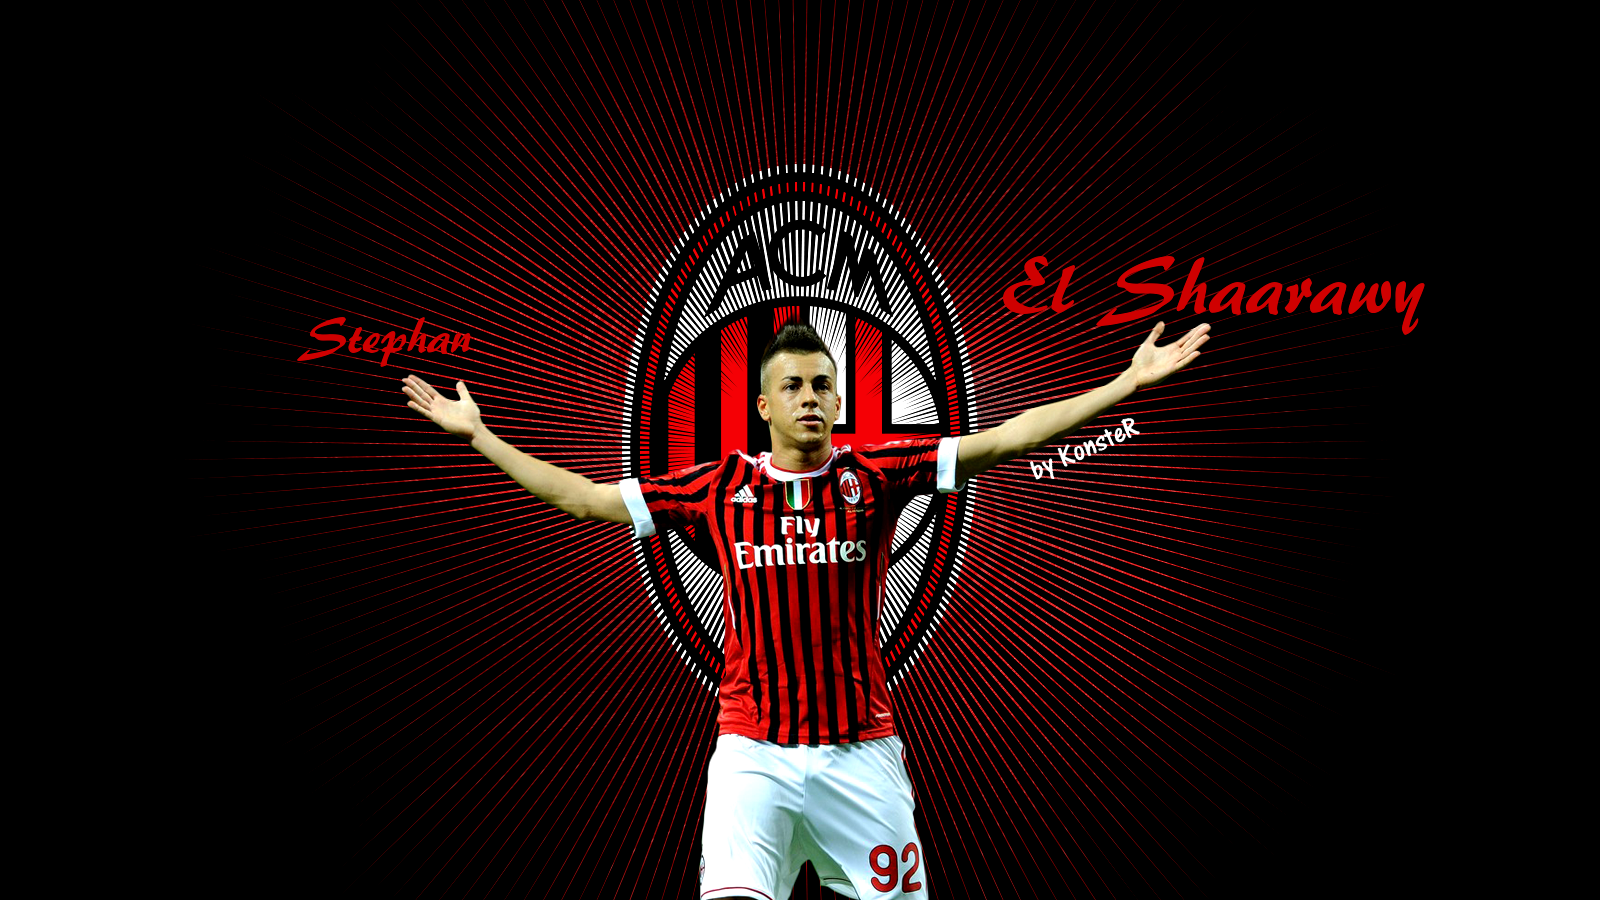 Stephan el shaarawy football wallpaper backgrounds and picture stephan el shaarawy wallpaper voltagebd Image collections